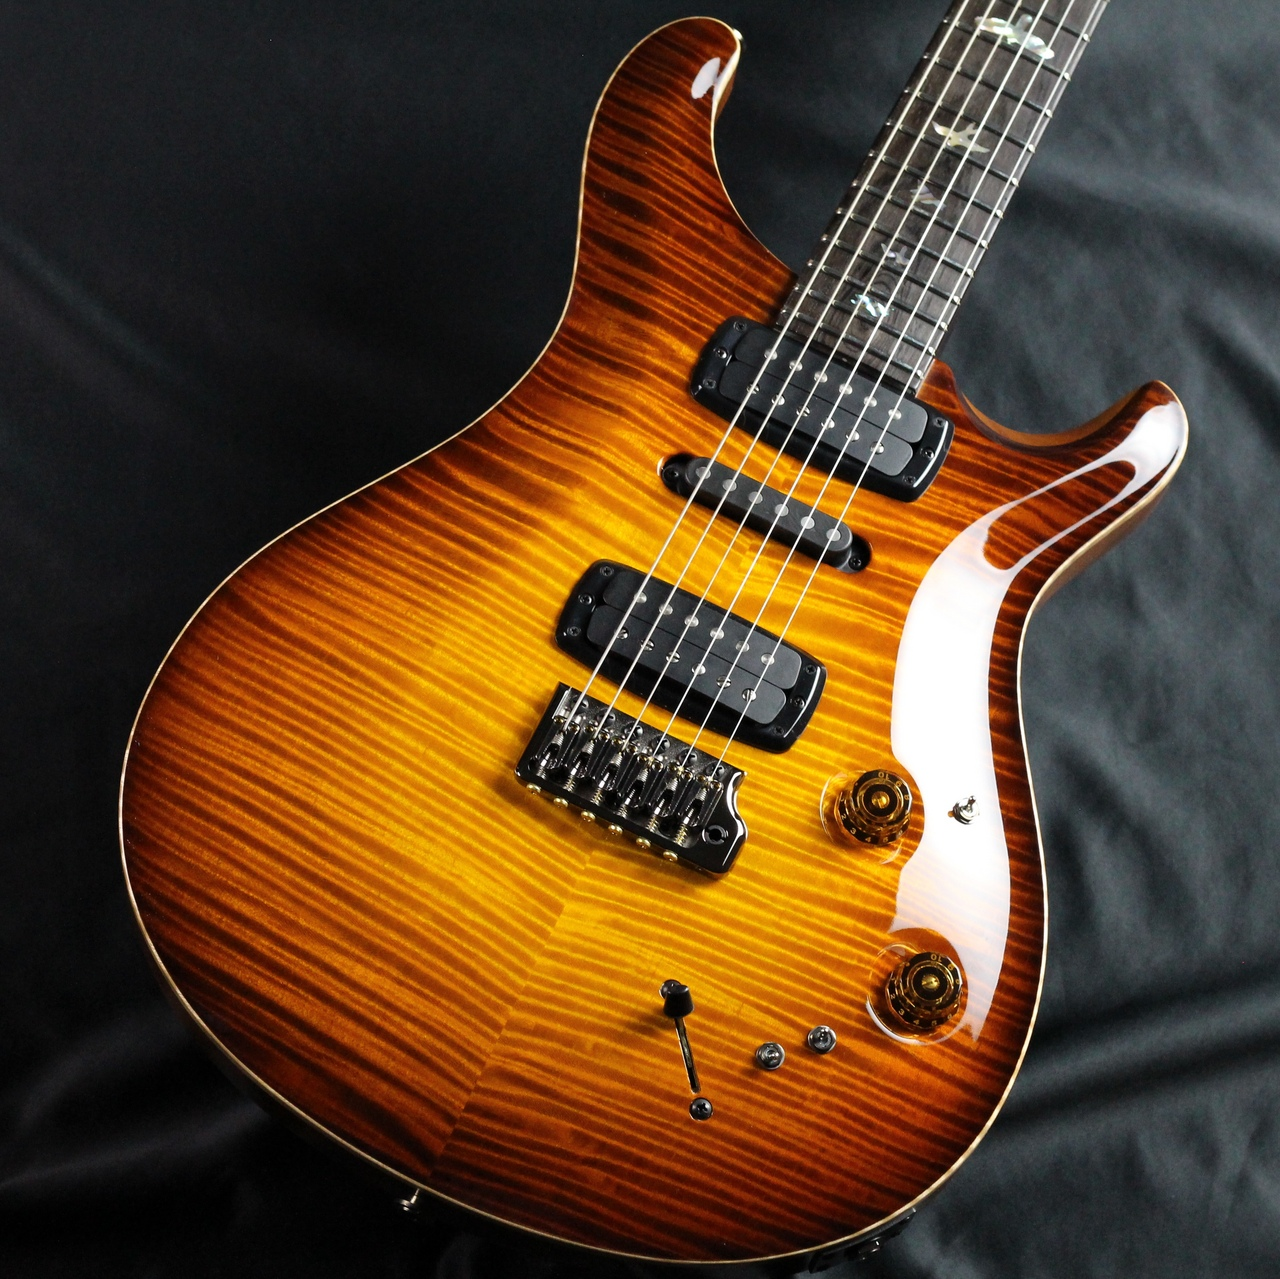 Private Stock Modern Eagle V Limited/McCarty Glowのボディバック-アップ画像